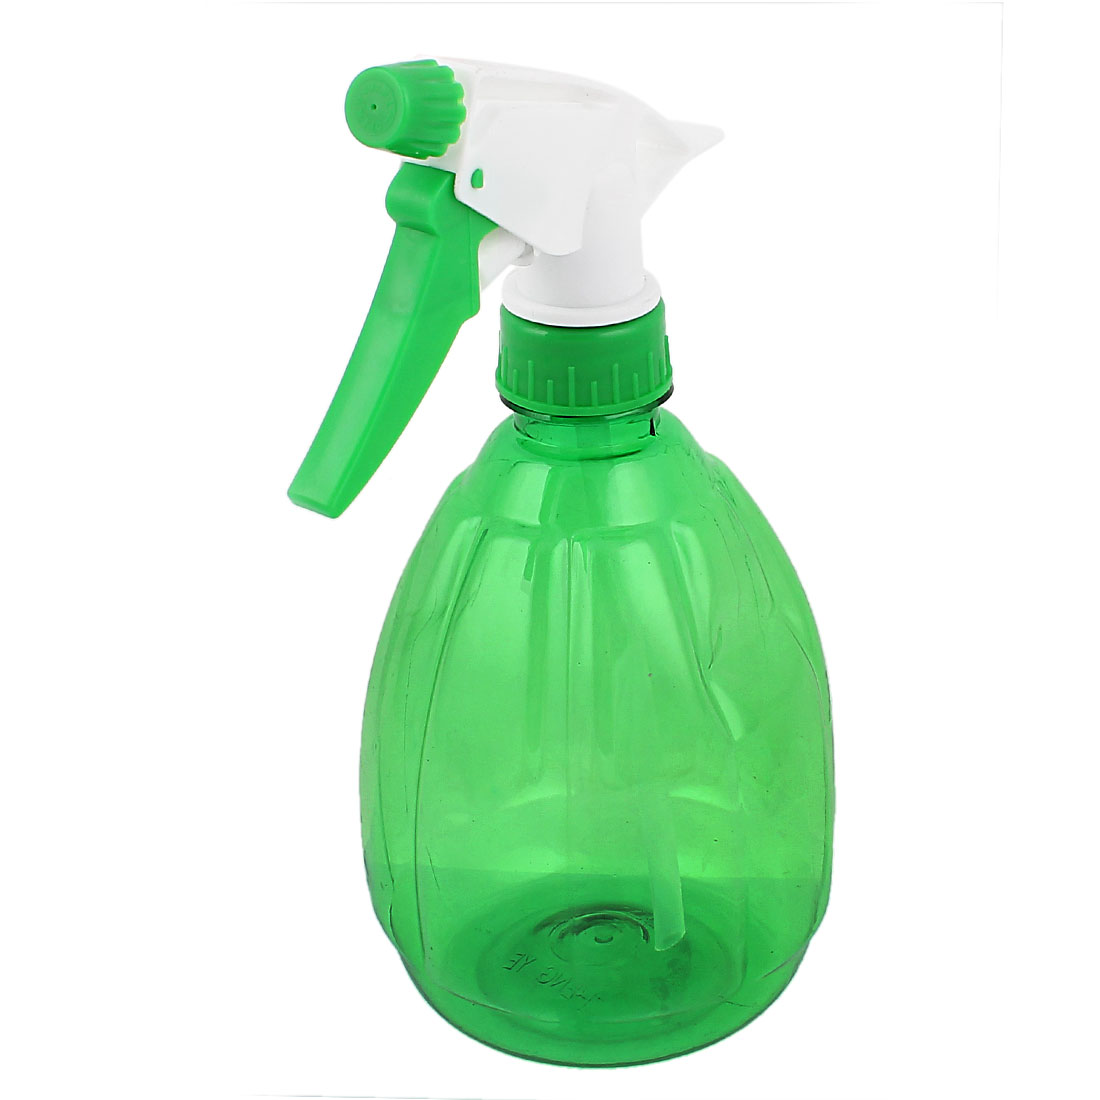 Clear Green Plastic Nozzle Head Makeup Water Sprayer Spray Bottle Hair Salon Tool 530ml